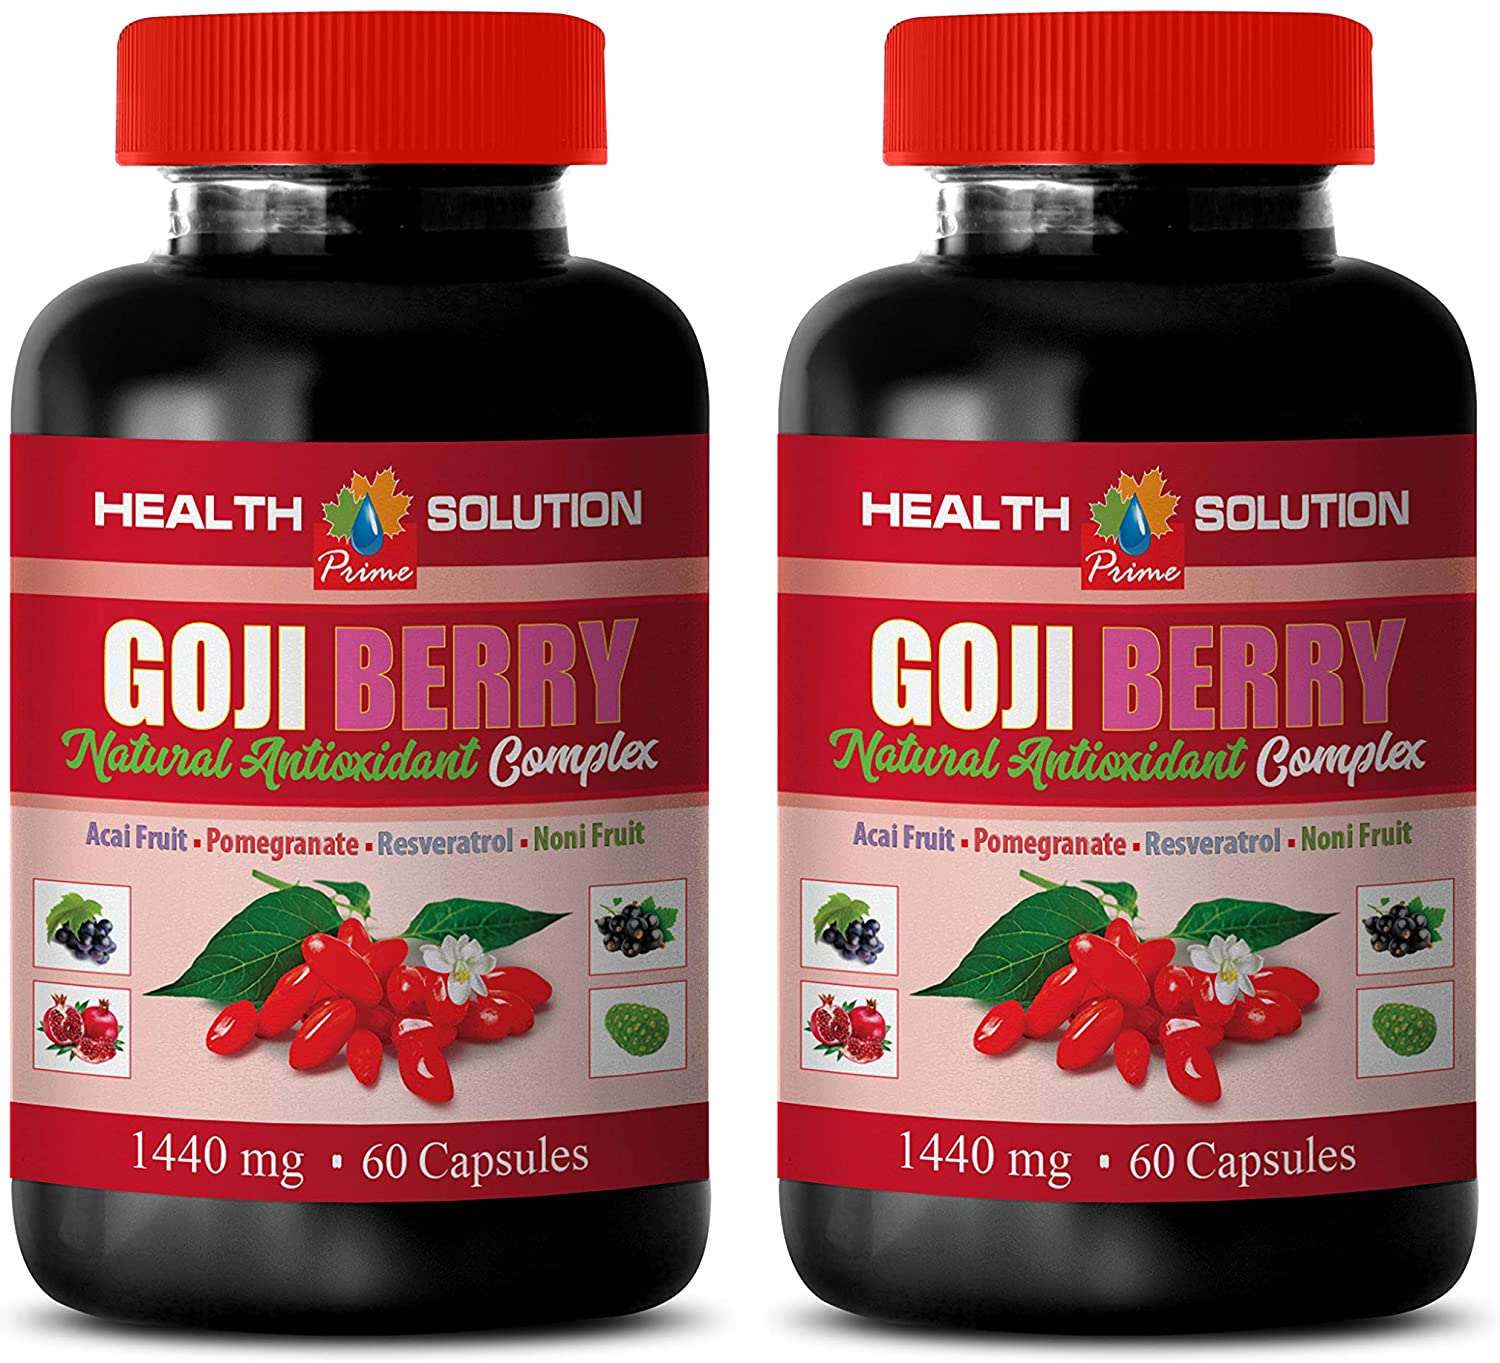 Brain Support Formula - Goji Berry - Natural ANTIOXIDANT Complex - Grape Skin Capsules - 2 Bottles 120 Capsules